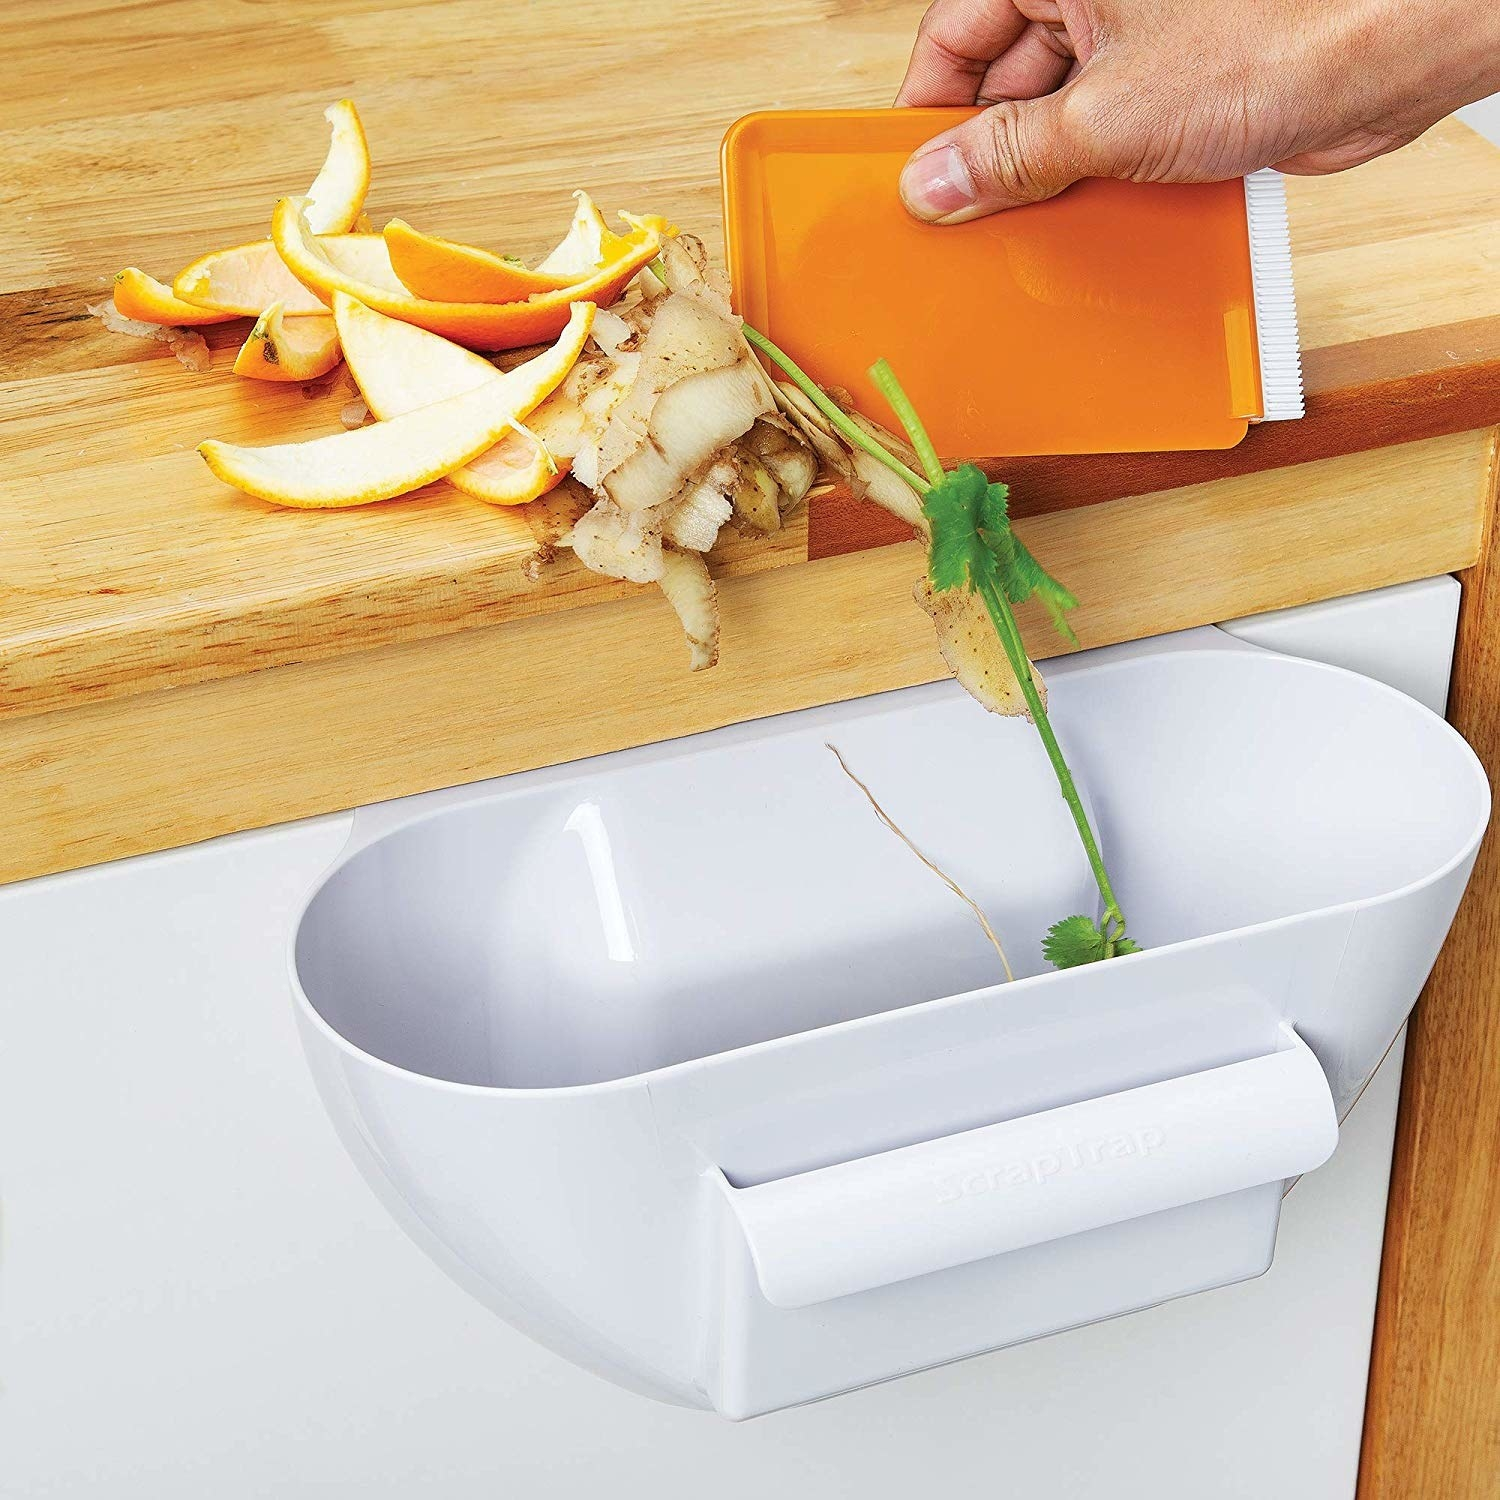 A person scraping vegetable and fruit peels into a small bin hanging off the end of a counter